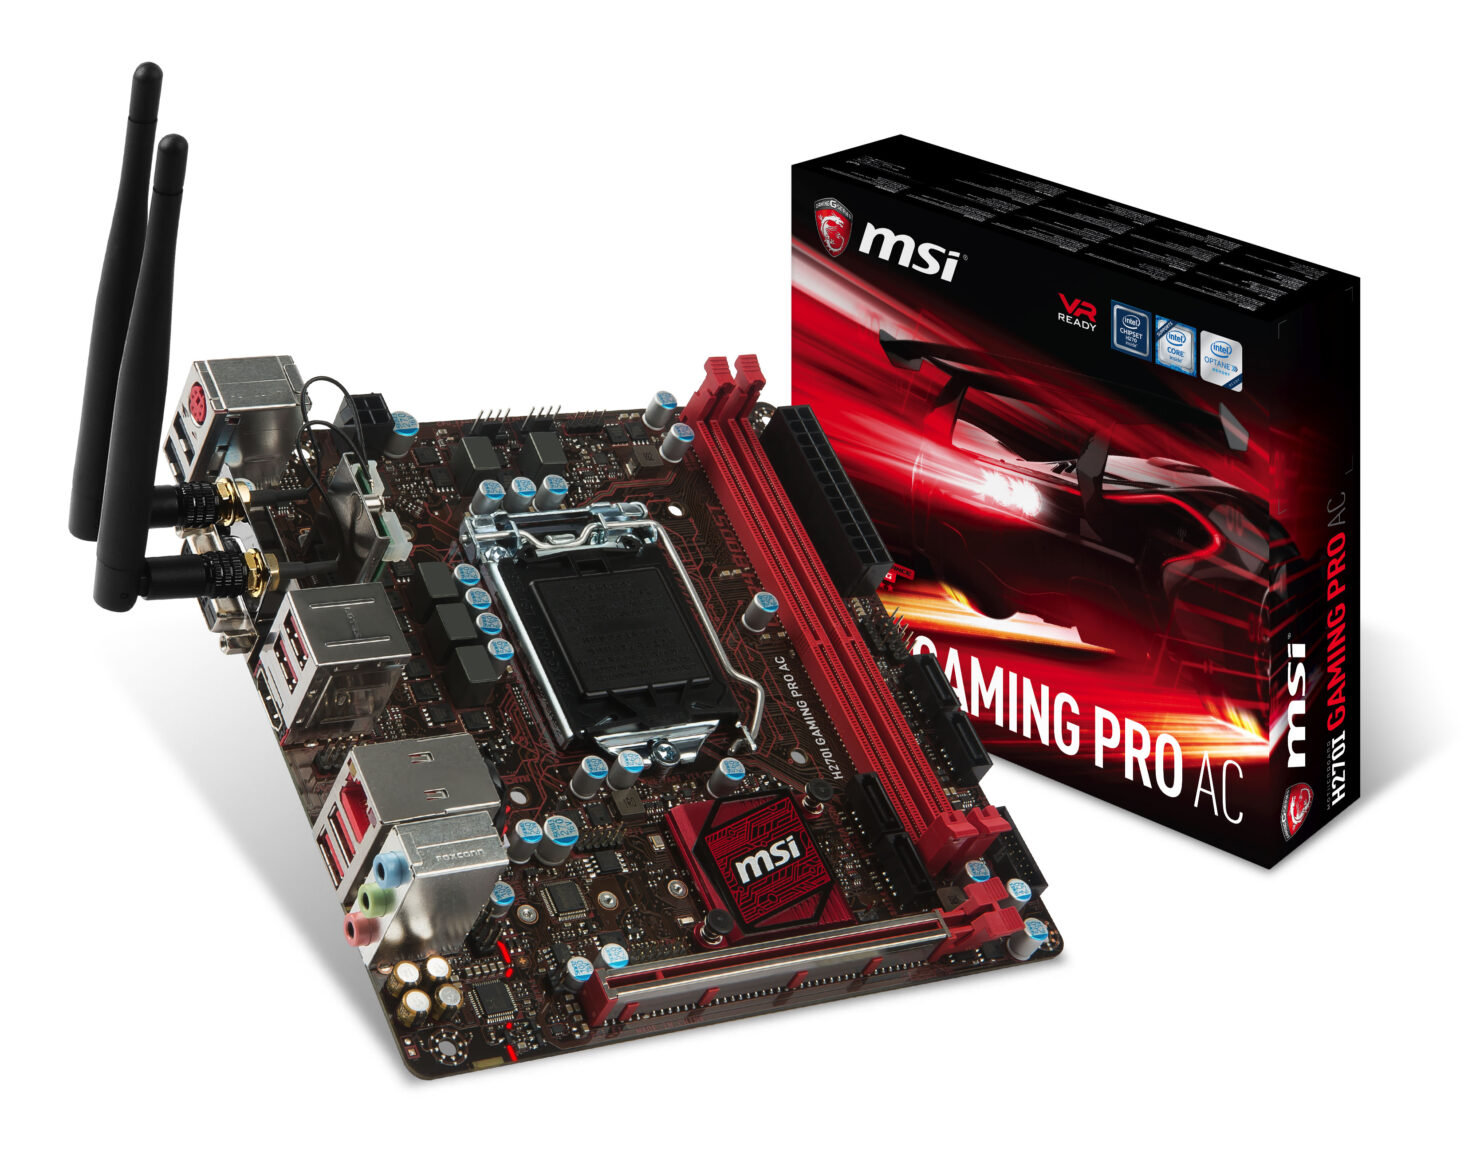 msi-h270i_gaming_pro_ac-product_pictures-boxshot